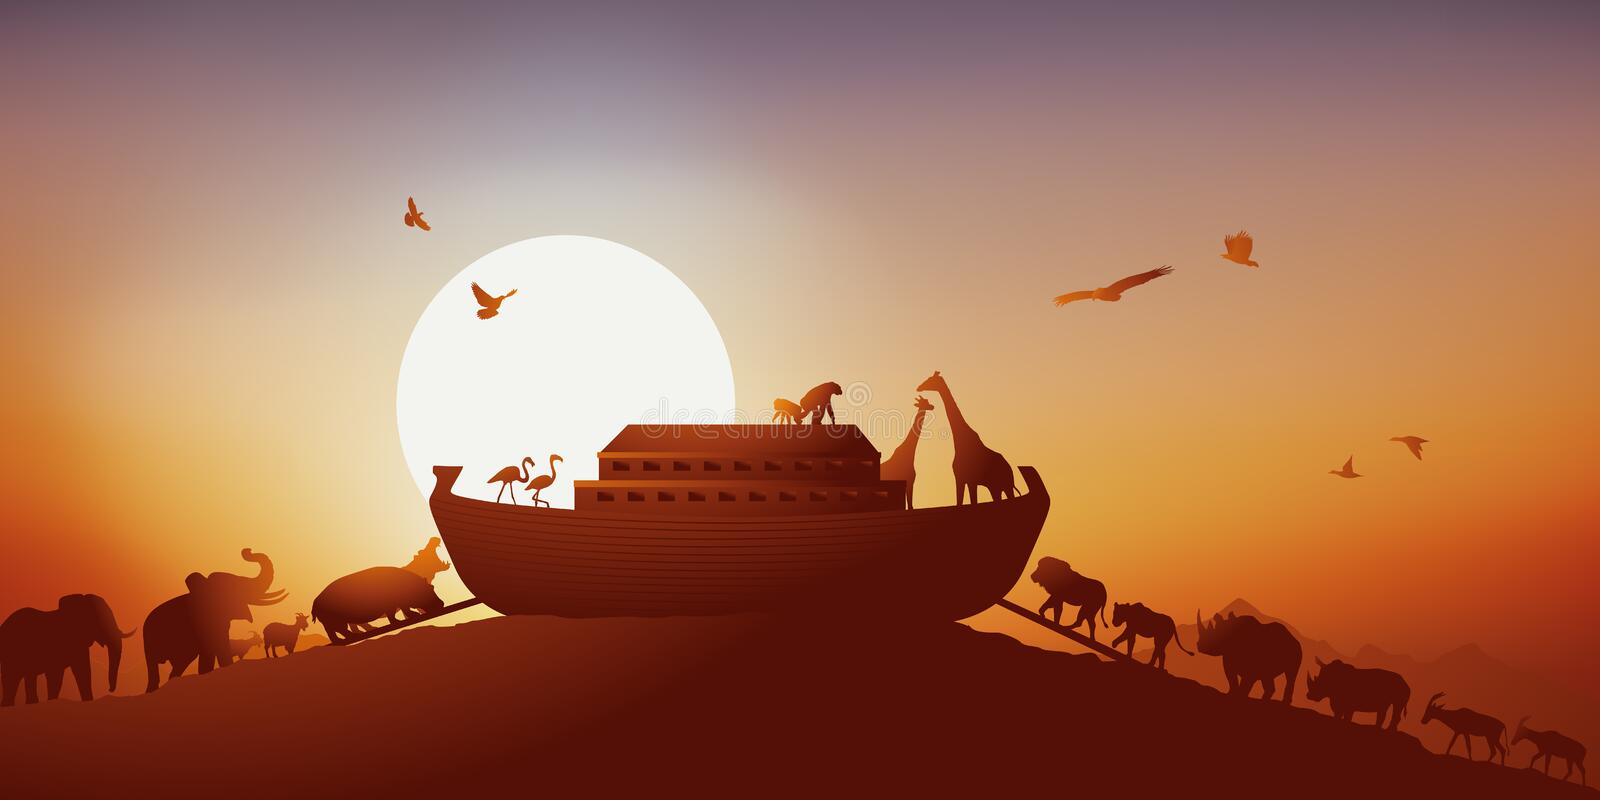 Famous legend of Noah's ark before the flood. Famous scene of the Bible where all the animal species of the earth rise in the ark of Noah, to escape the vector illustration